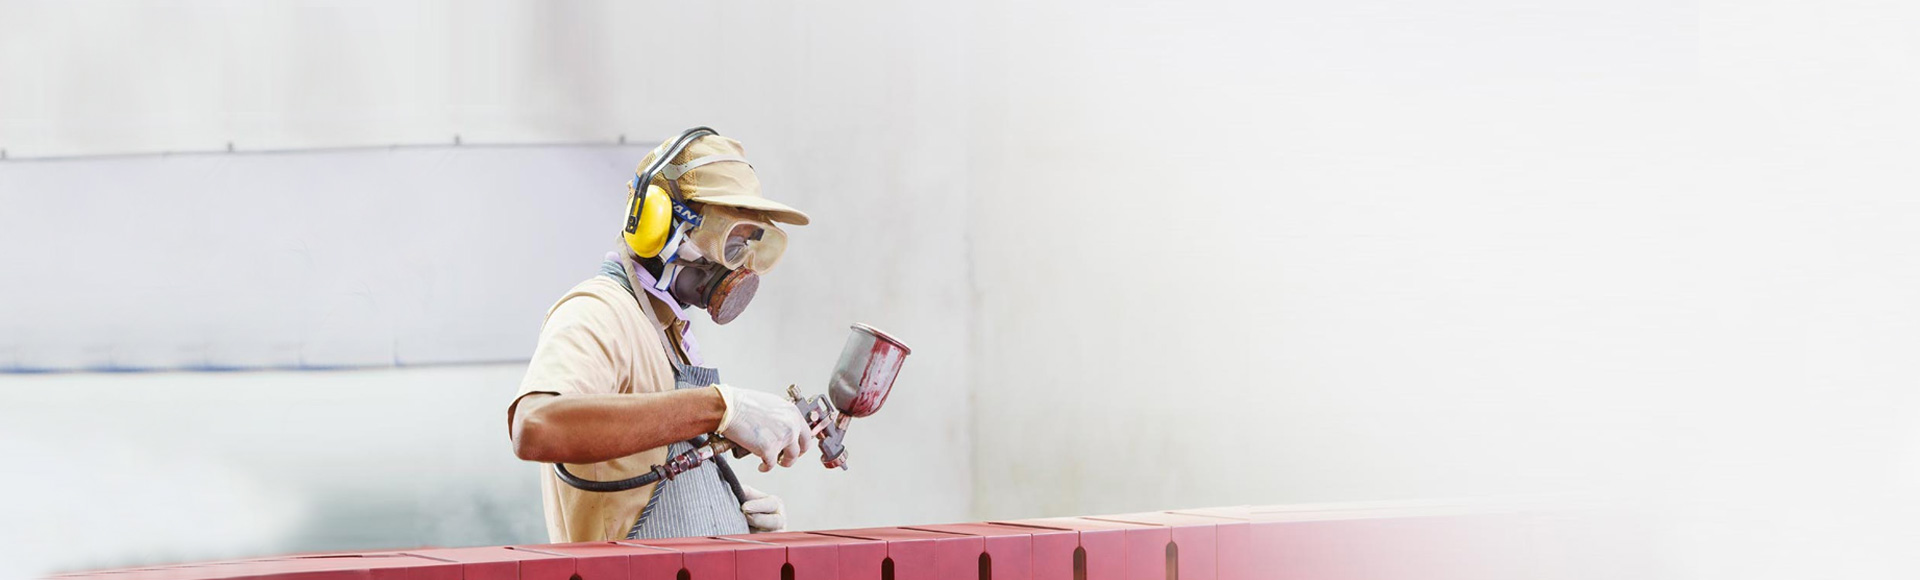 Timber Concepts - Spray Painting Process